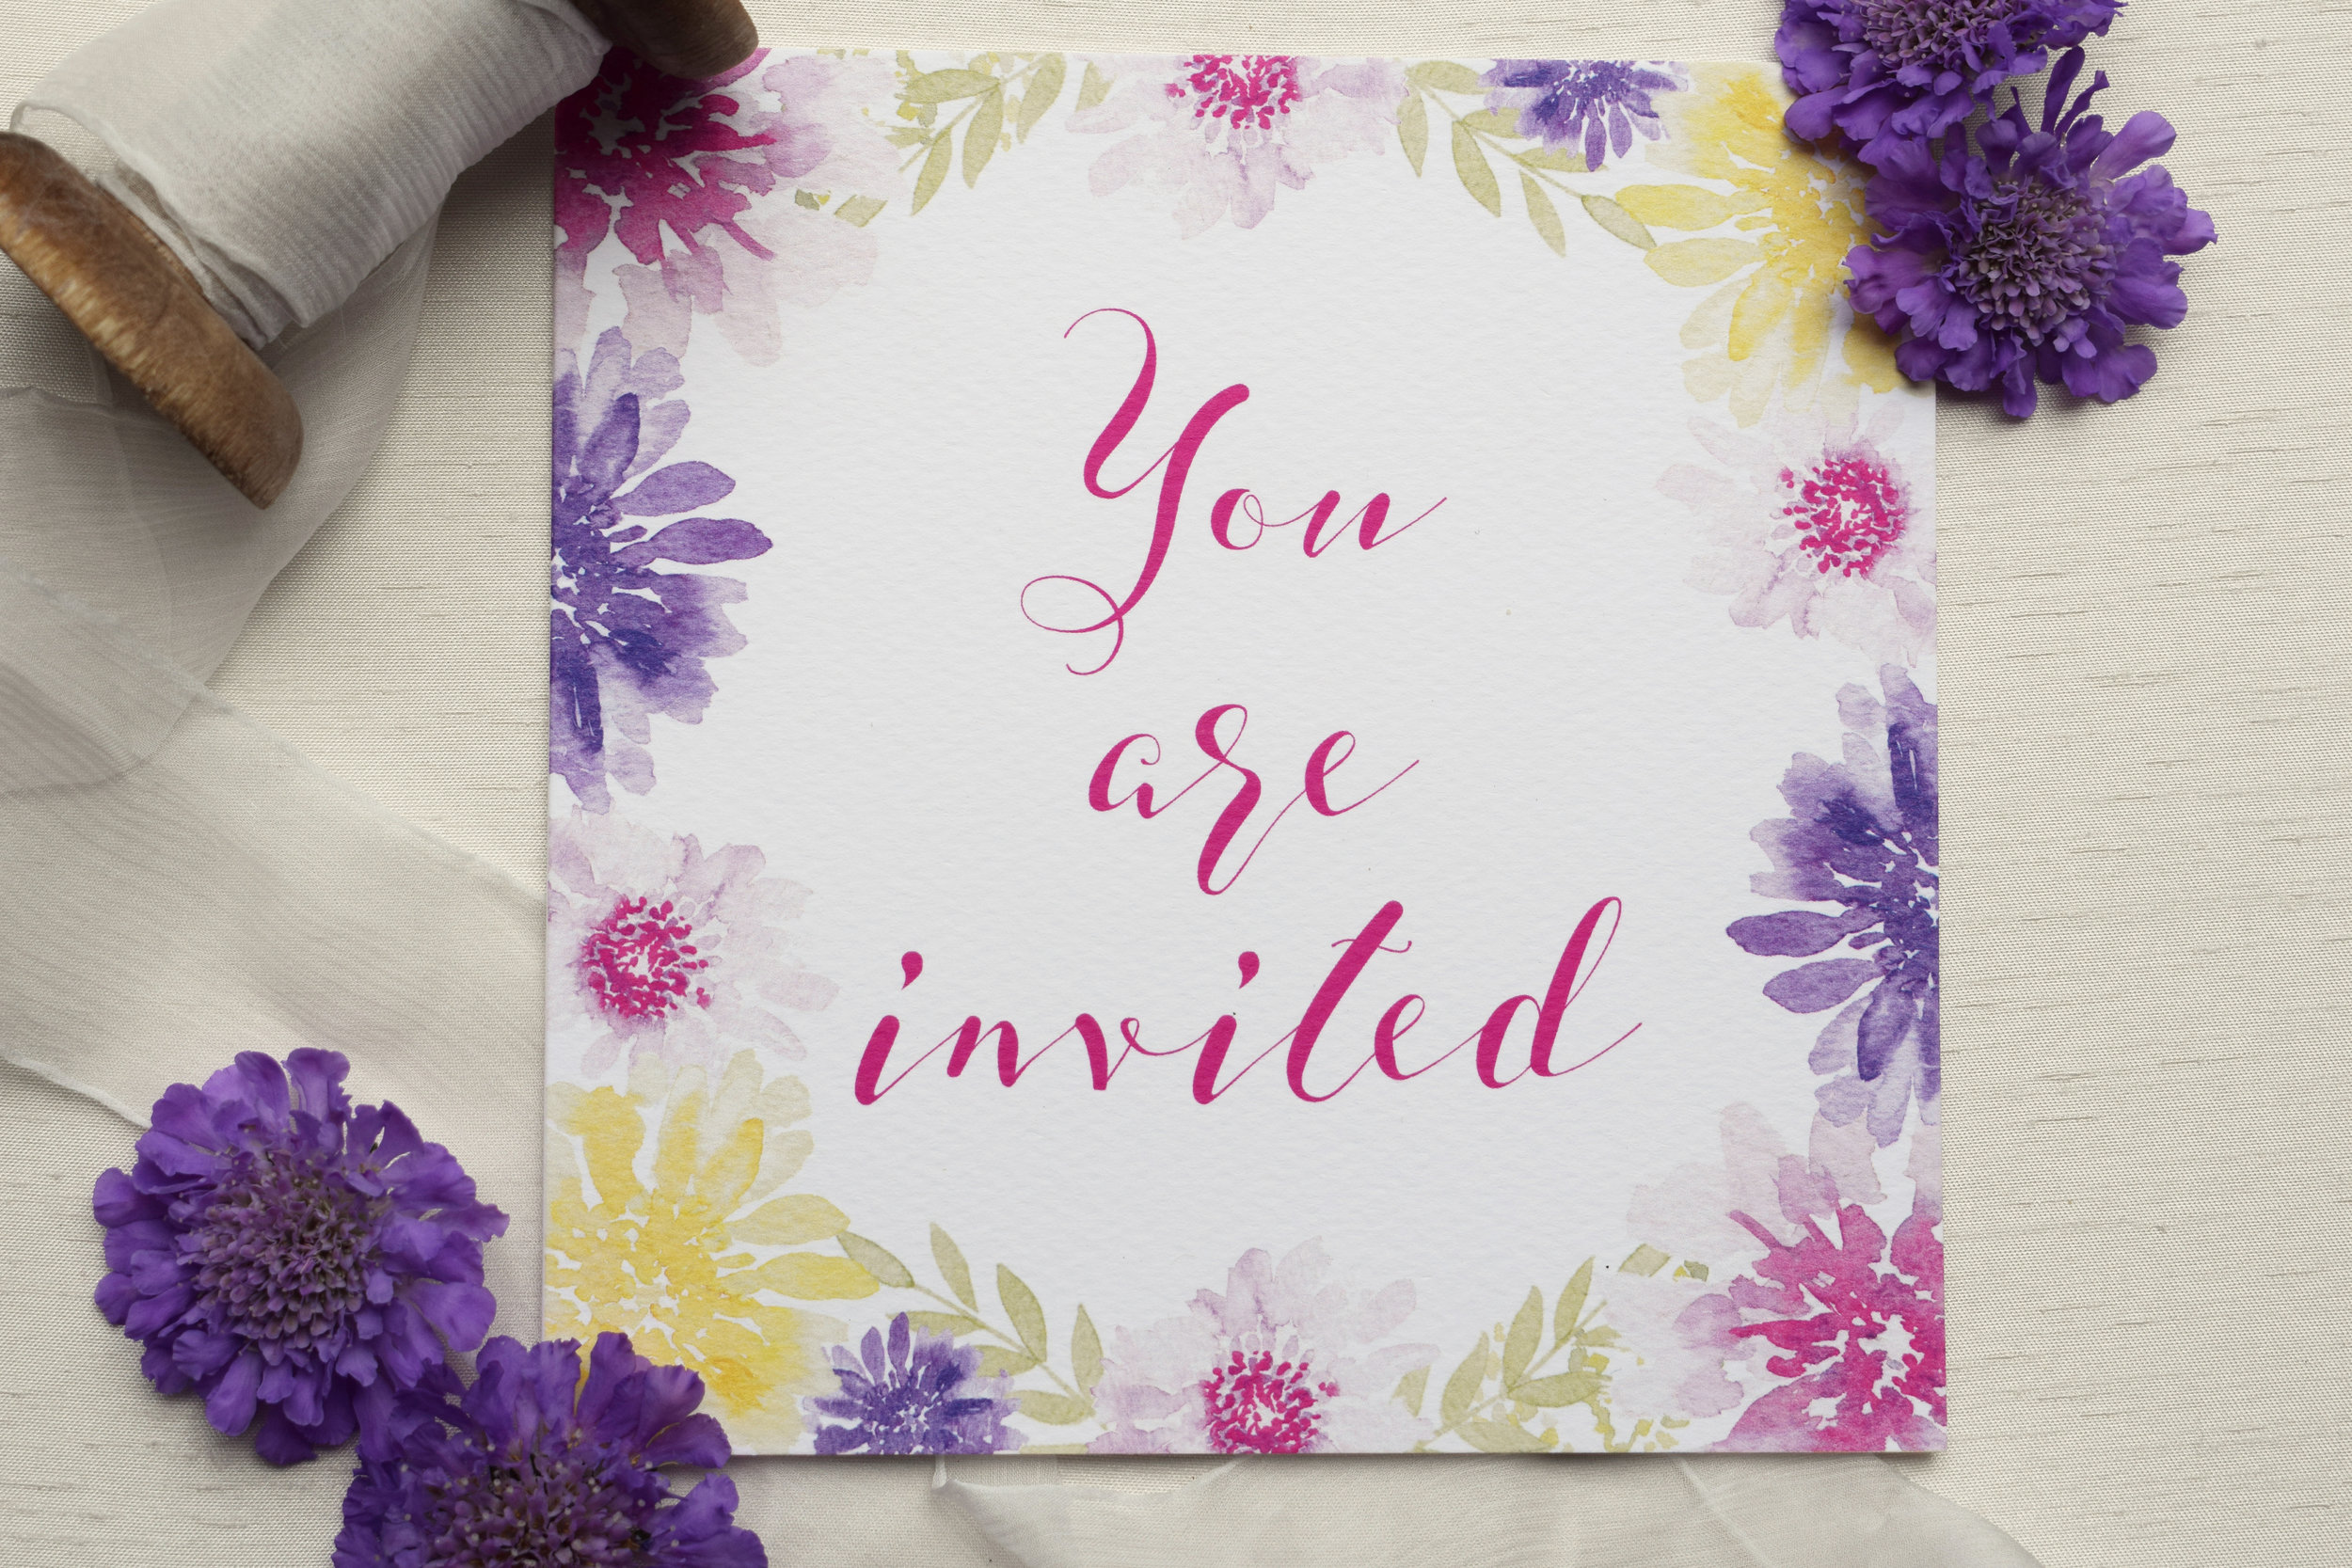 Bloom floral square wedding invitation.jpg